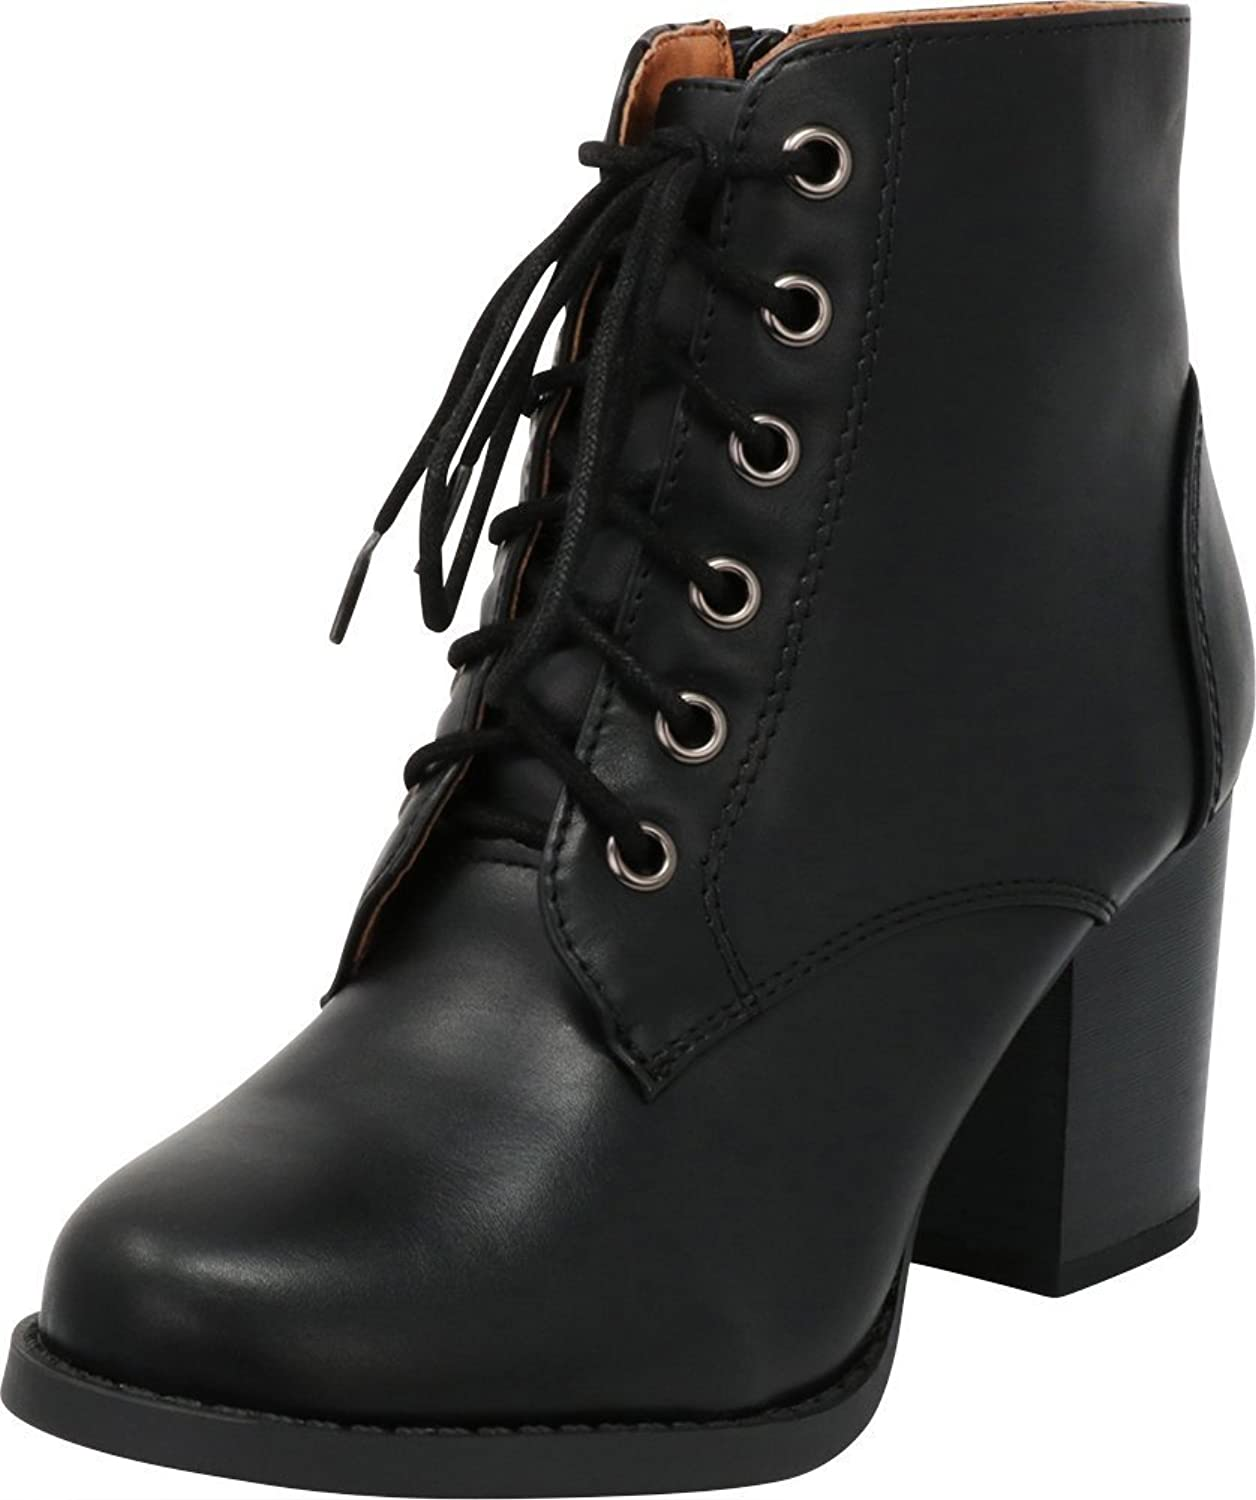 Cambridge Select Women's Round Toe Lace-Up Chunky Stacked Block Heel Ankle Bootie